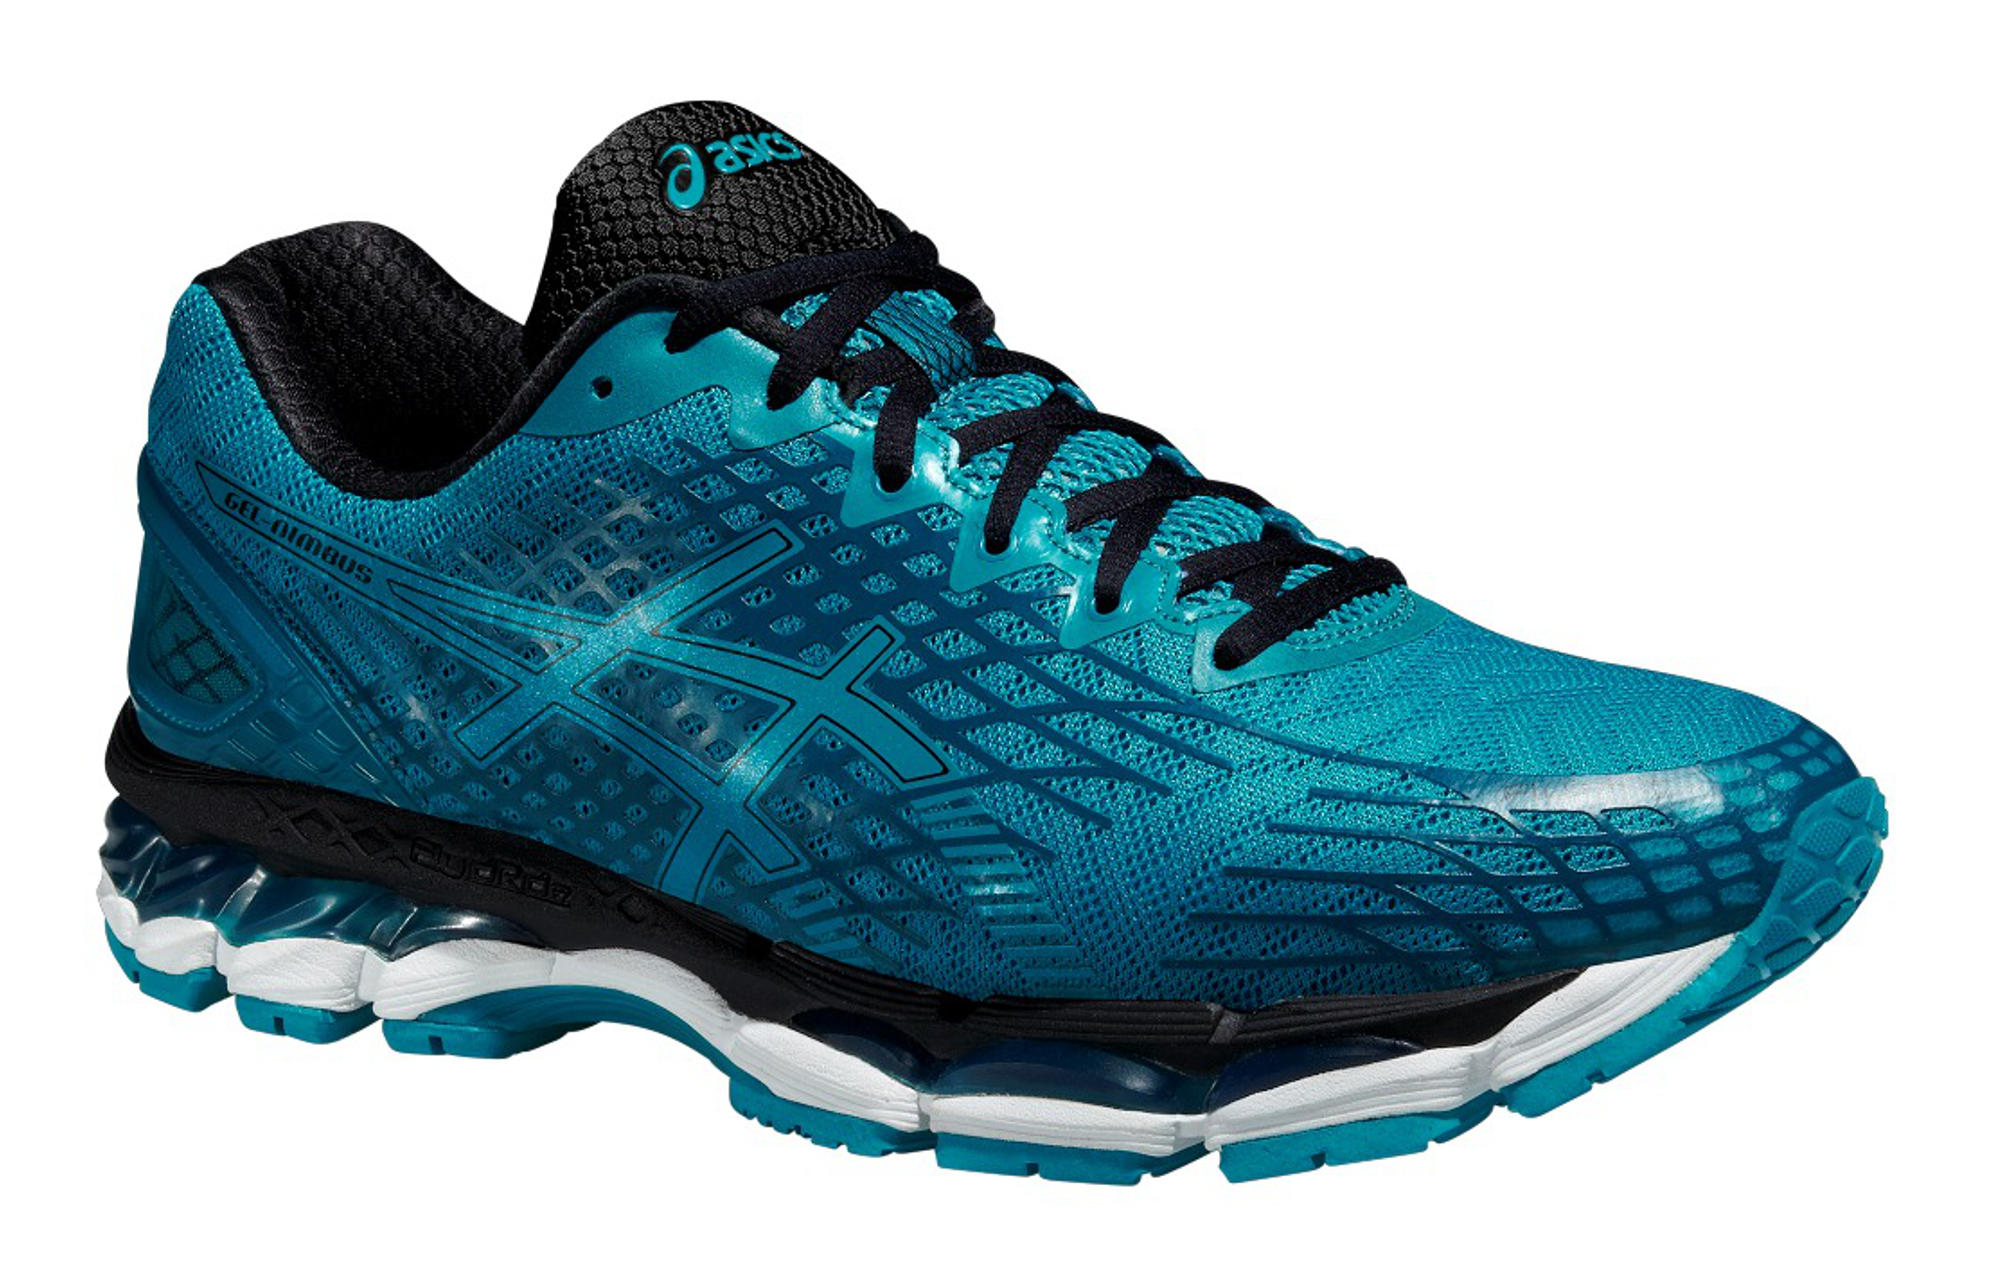 the best attitude 87610 91a40 ... spain chaussures de running asics gel nimbus 17 bleu b5884 c57aa